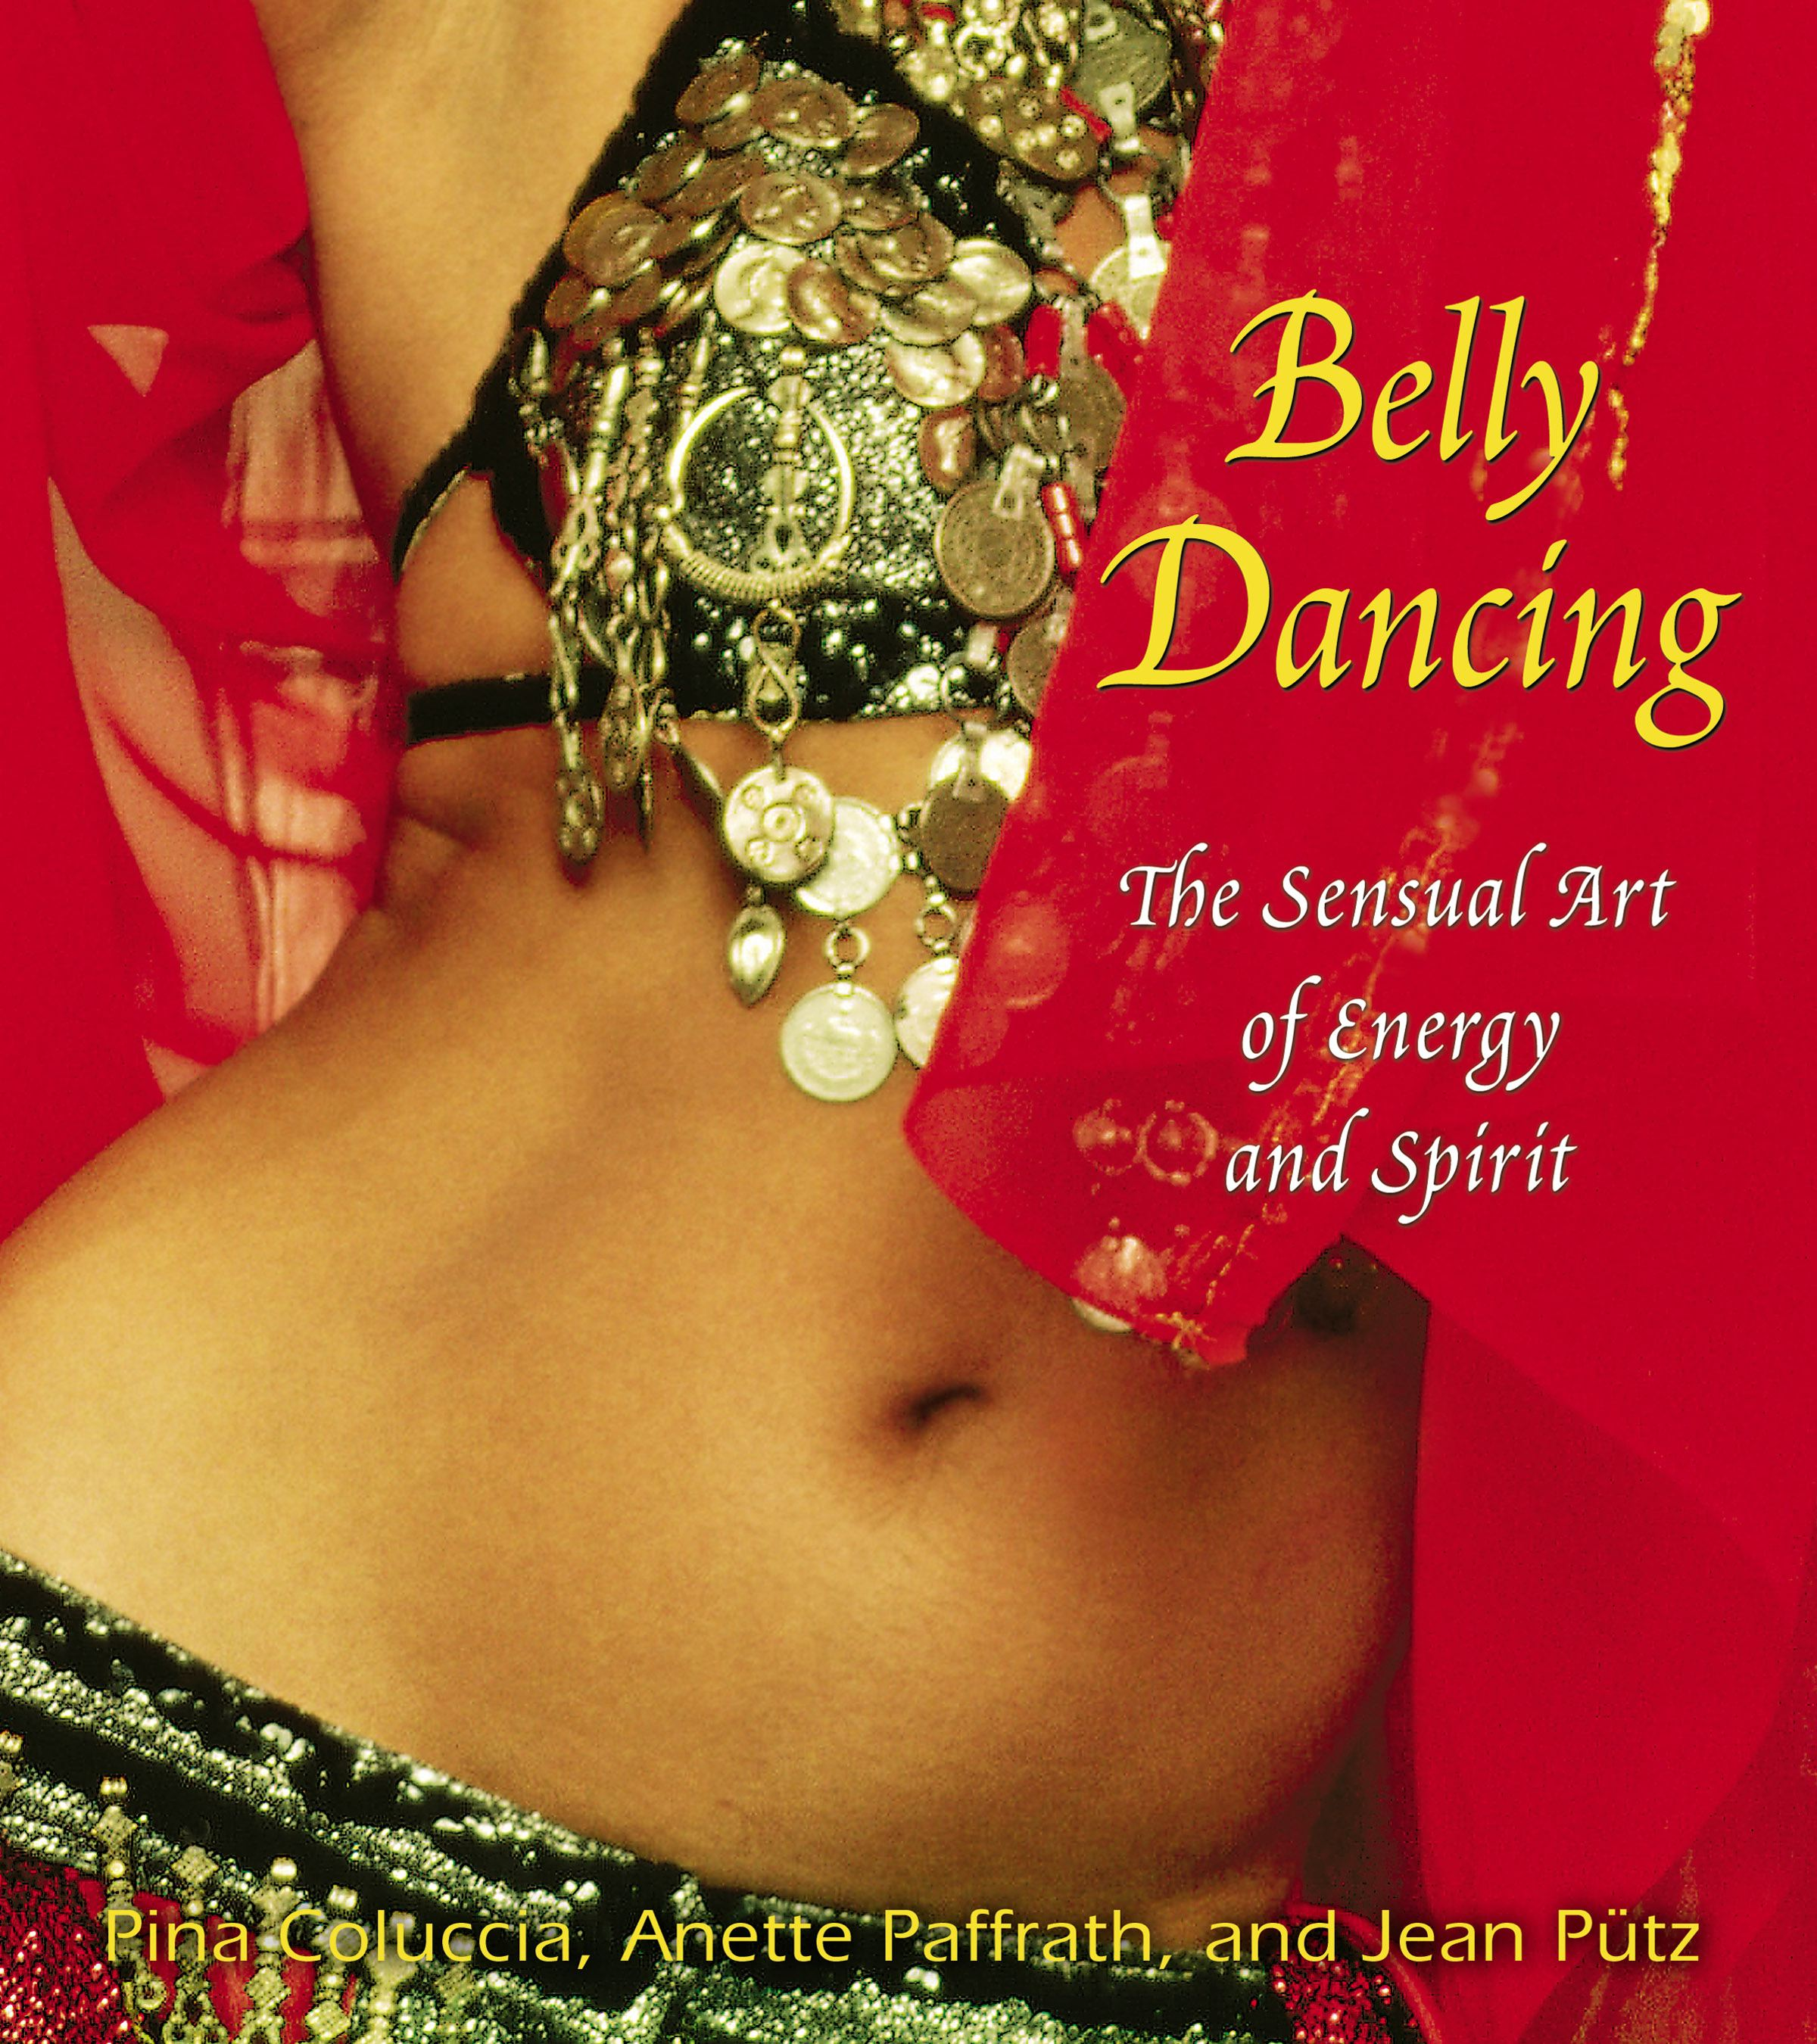 Belly dancing 9781594770210 hr